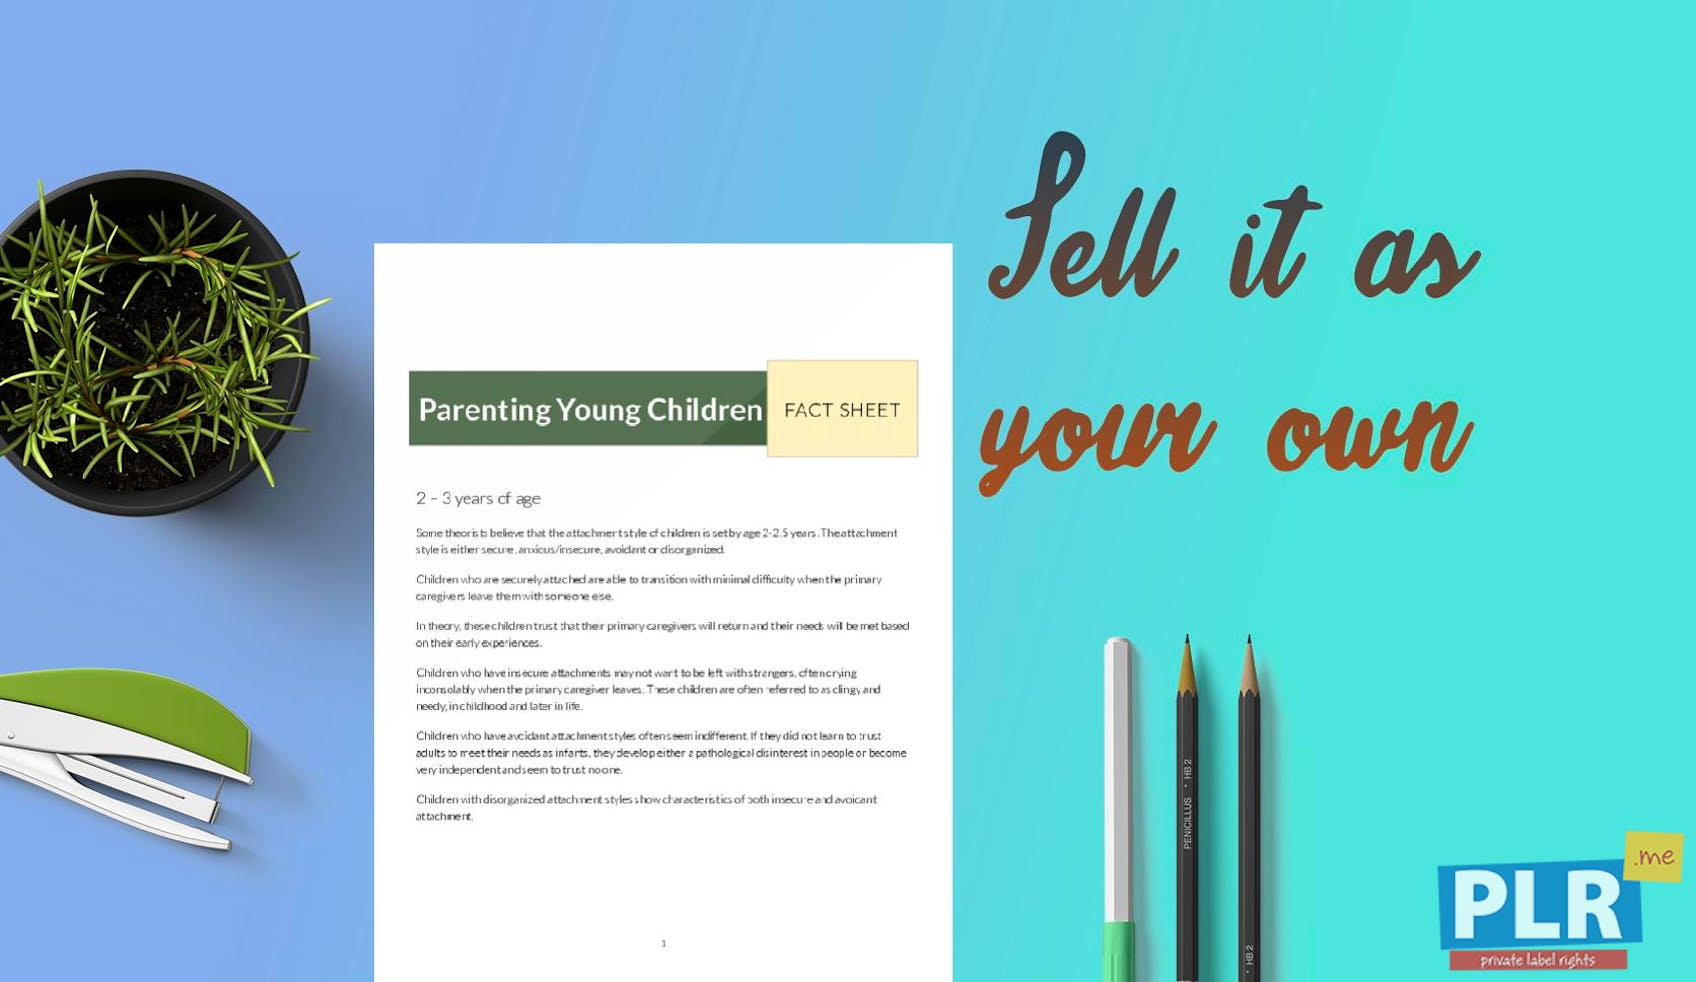 Parenting Young Children Fact Sheet